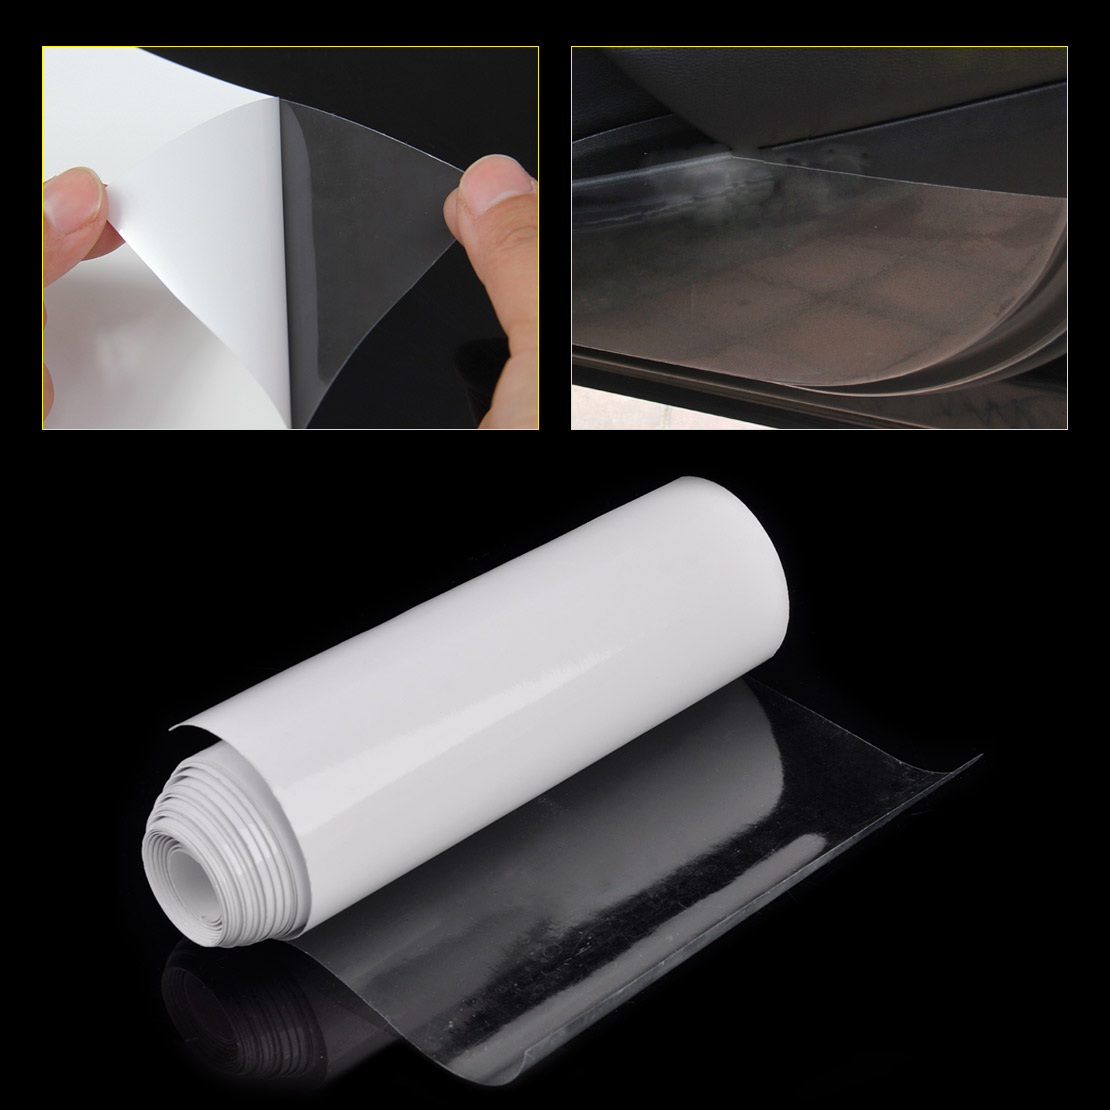 CITALL 300 x 15cm Clear Car Door Sill Edge Paint Sheet Decal Anti-Scratch Protection Film for Ford VW Audi A4 A6 Q5 Mazda Toyota free ship turbo k03 29 53039700029 53039880029 058145703j n058145703c for audi a4 a6 vw passat 1 8t amg awm atw aug bfb aeb 1 8l